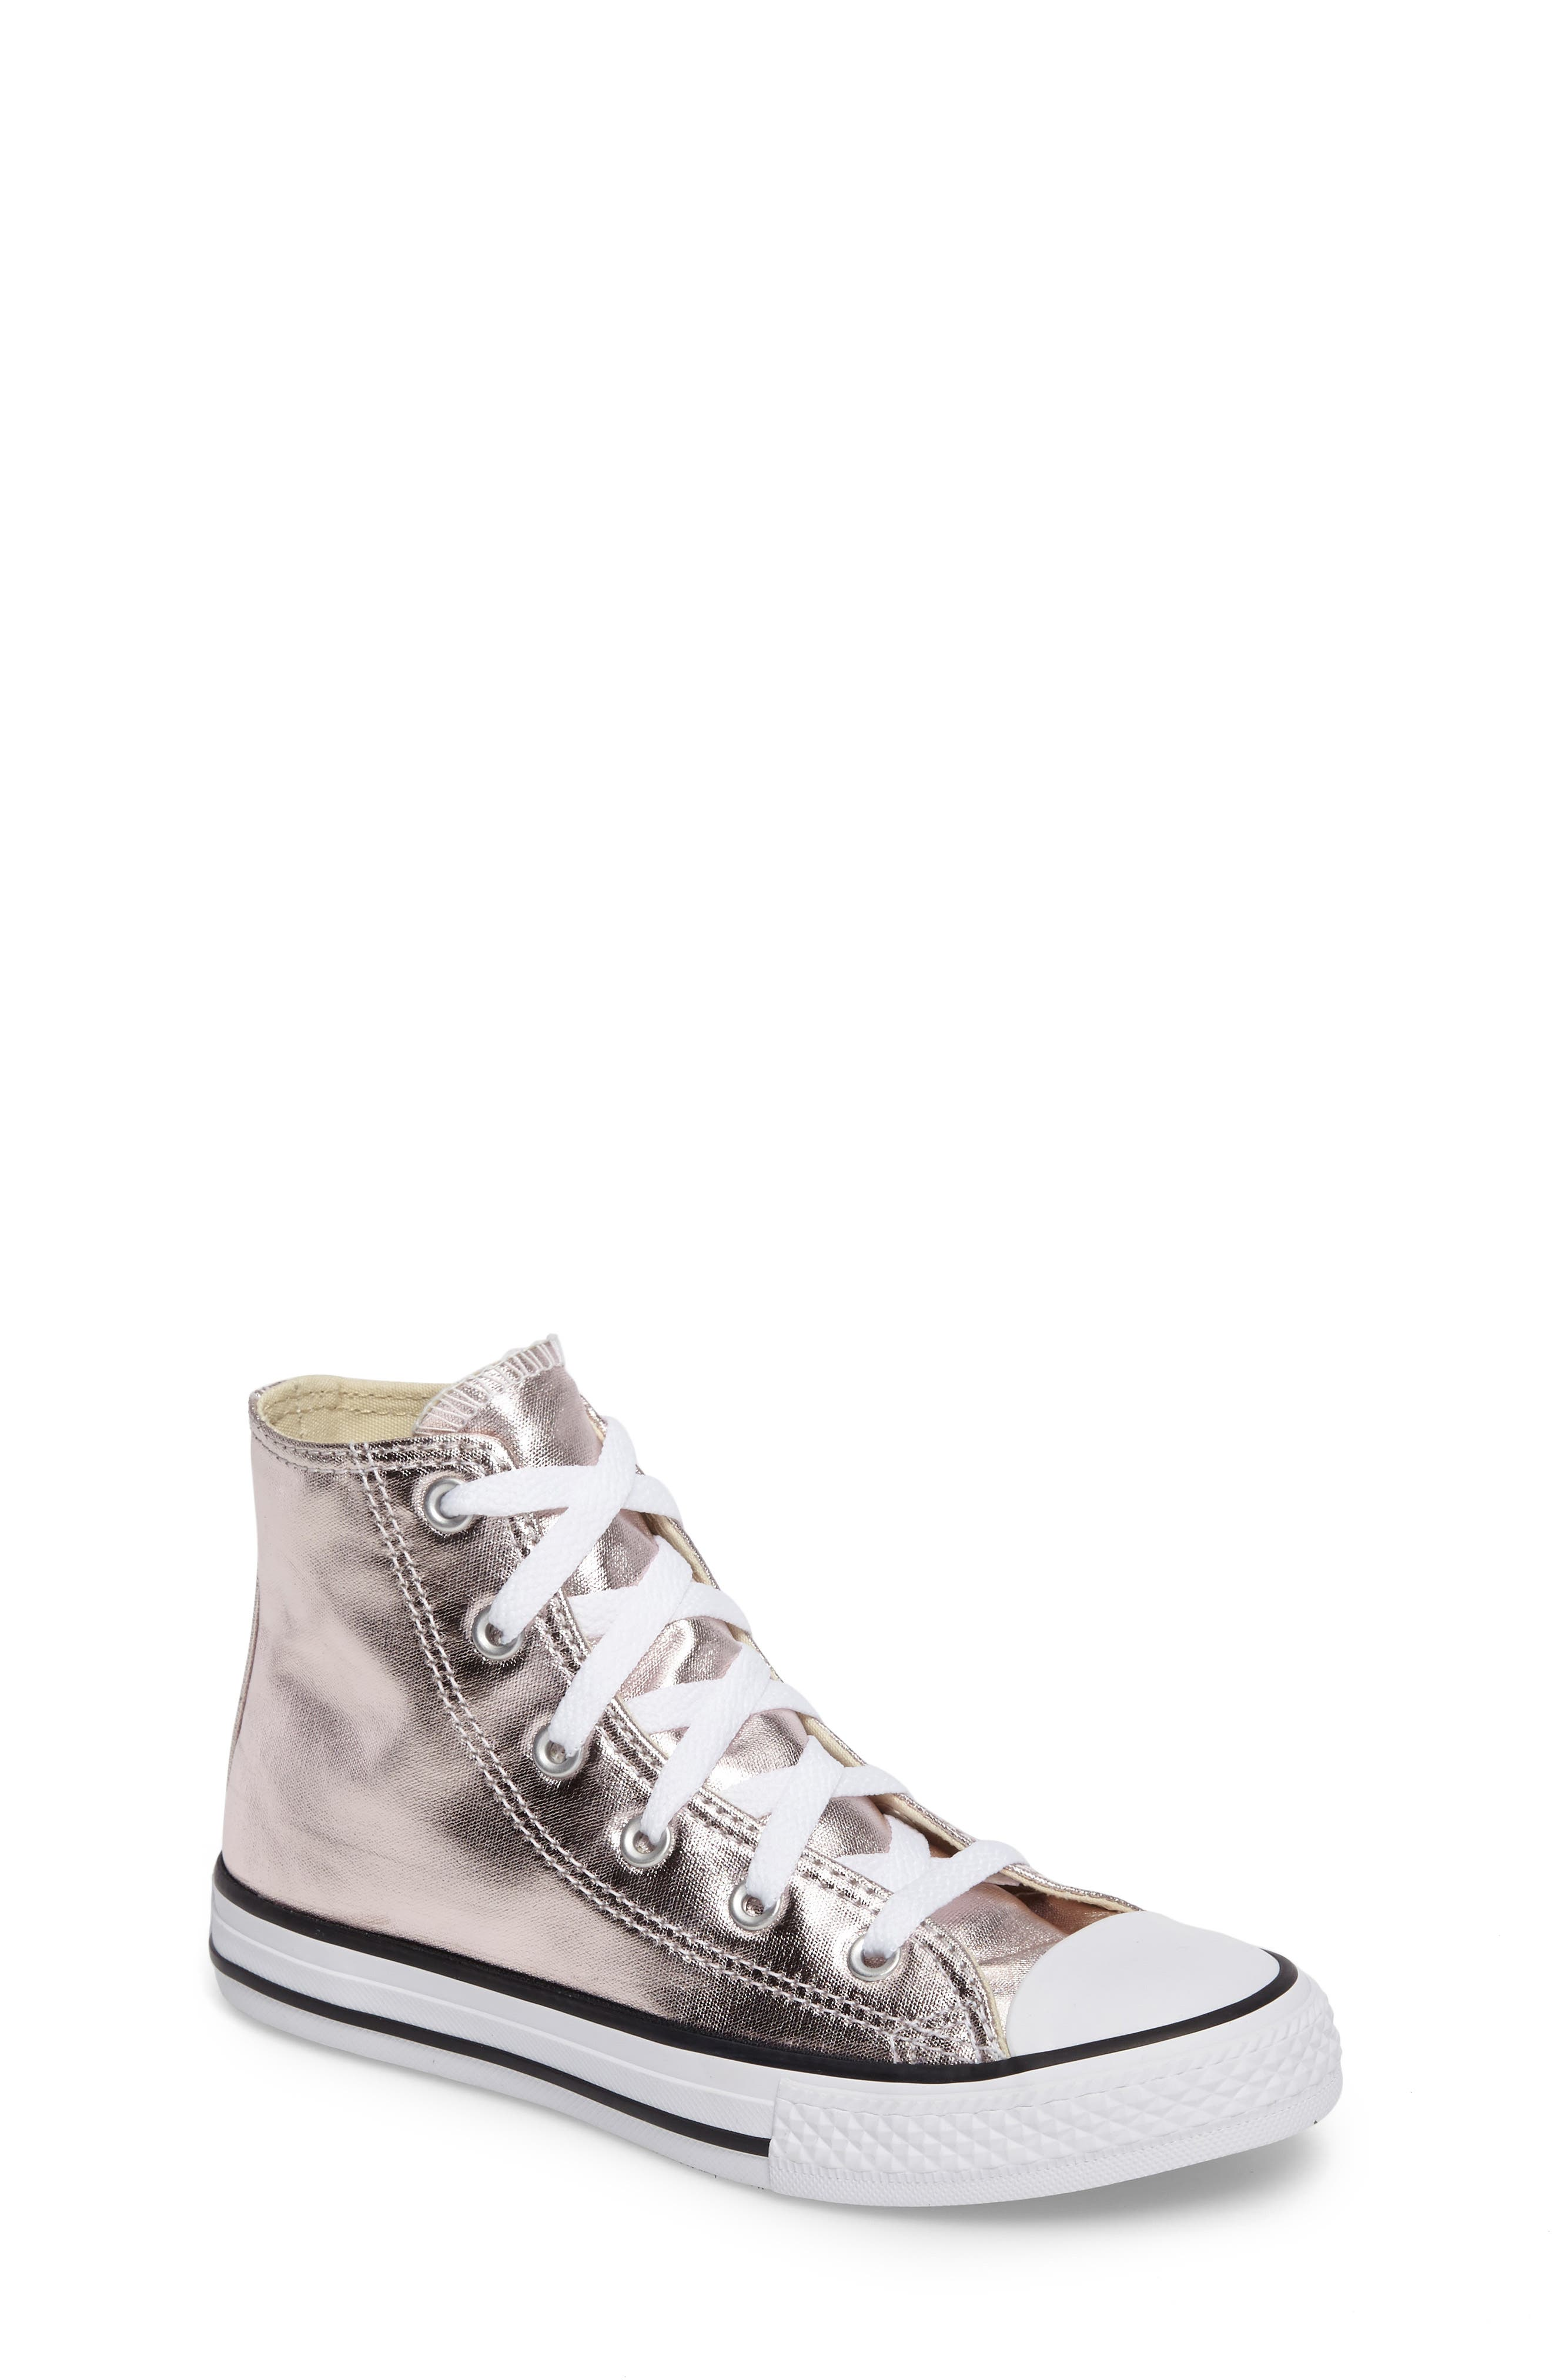 CONVERSE Chuck Taylor<sup>®</sup> All Star<sup>®</sup> Seasonal Metallic High Top Sneaker